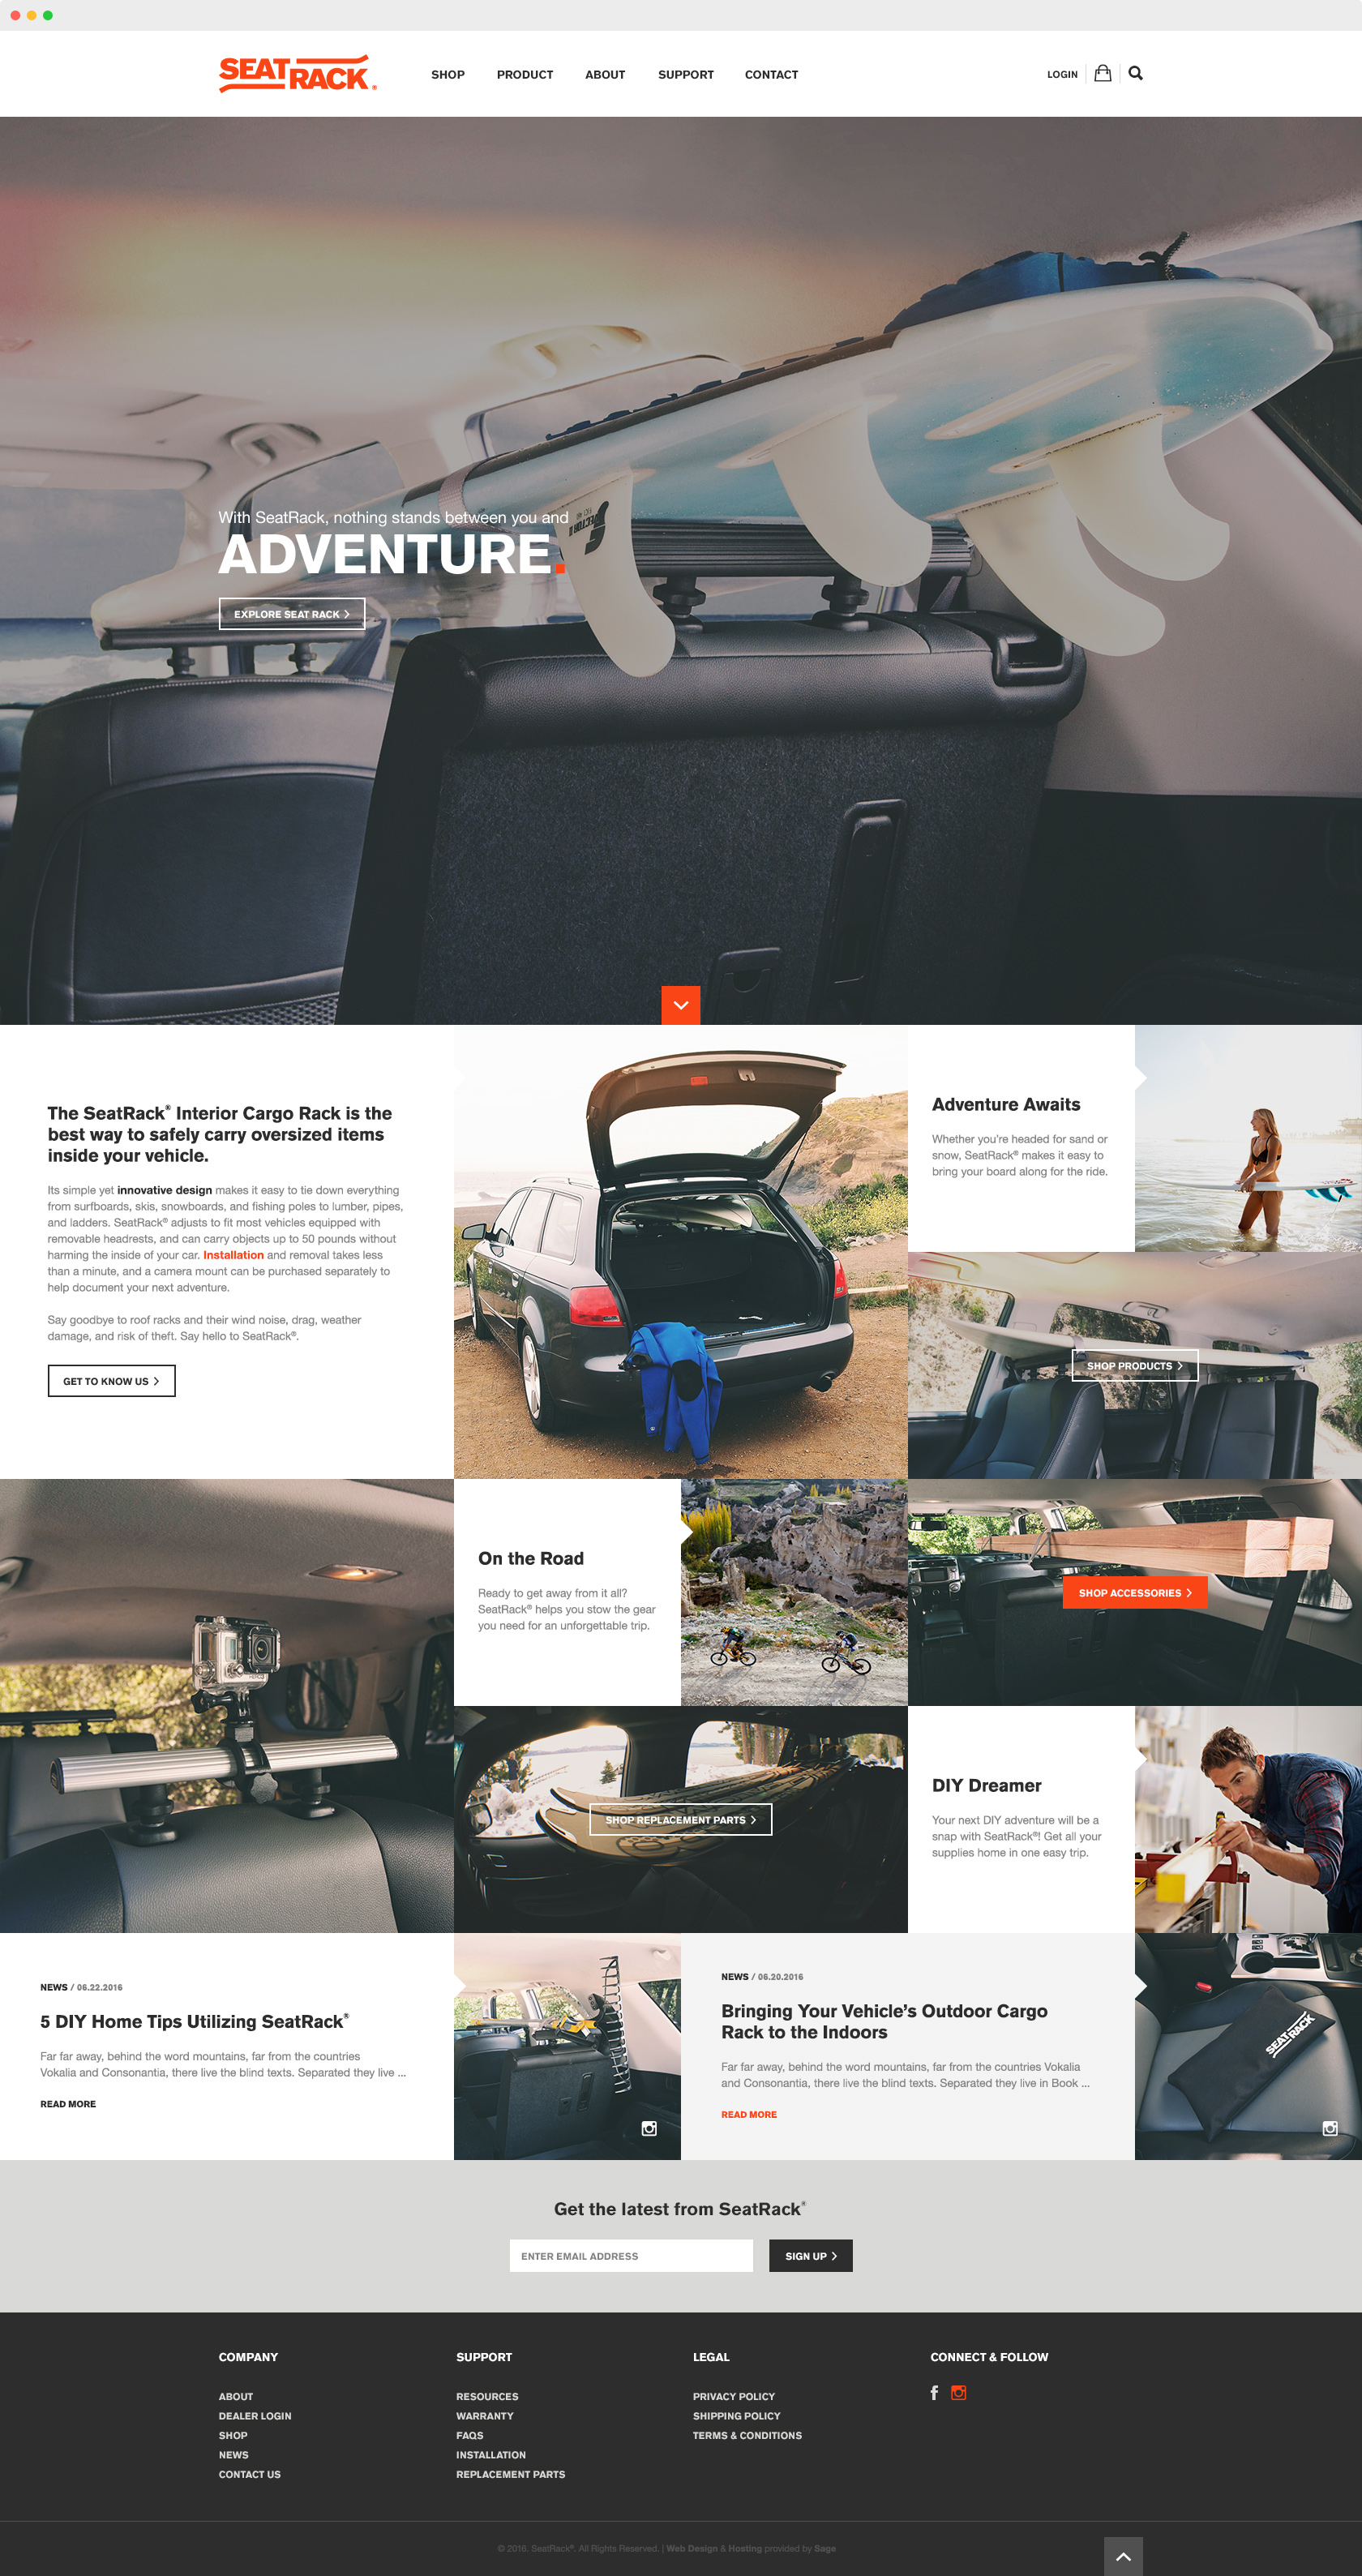 seat-rack-interior-vehicle-cargo-rack-website-design